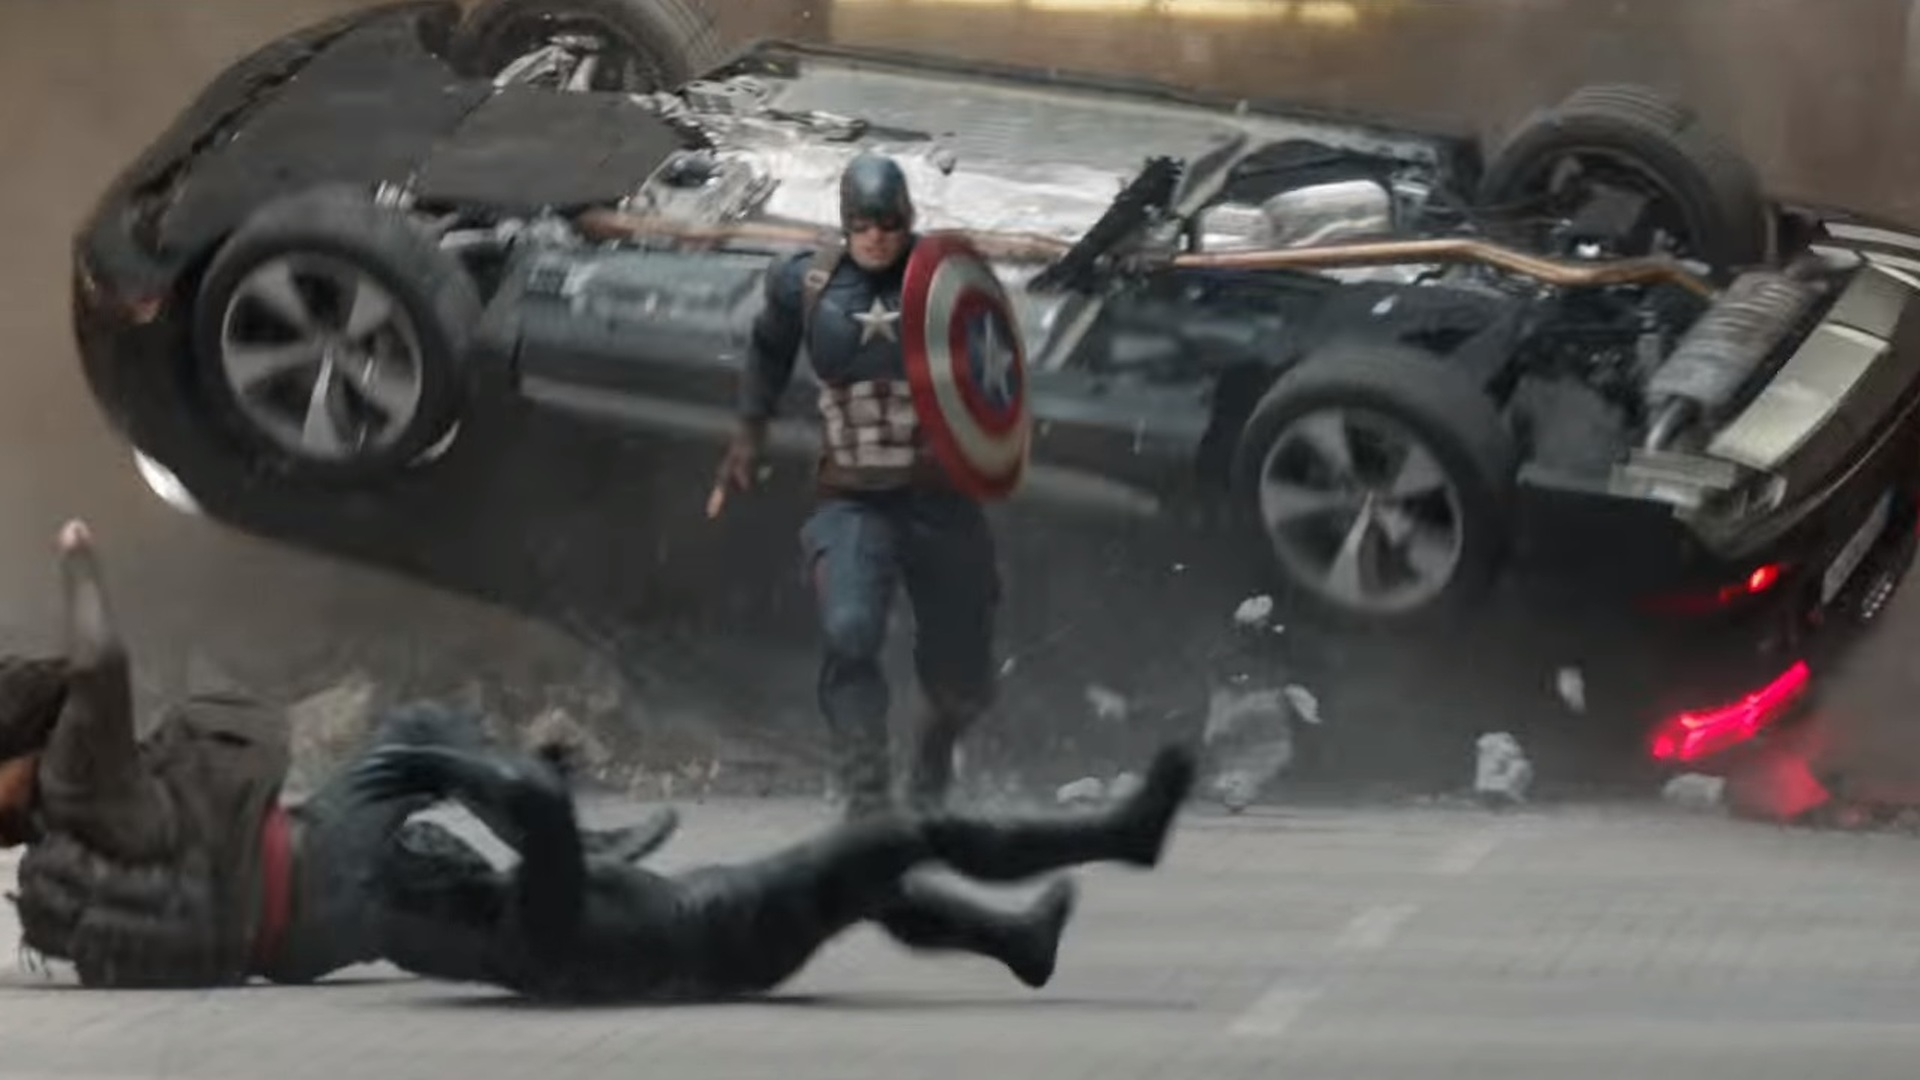 Audi Q7s Are Everywhere In New Scenes From Captain America